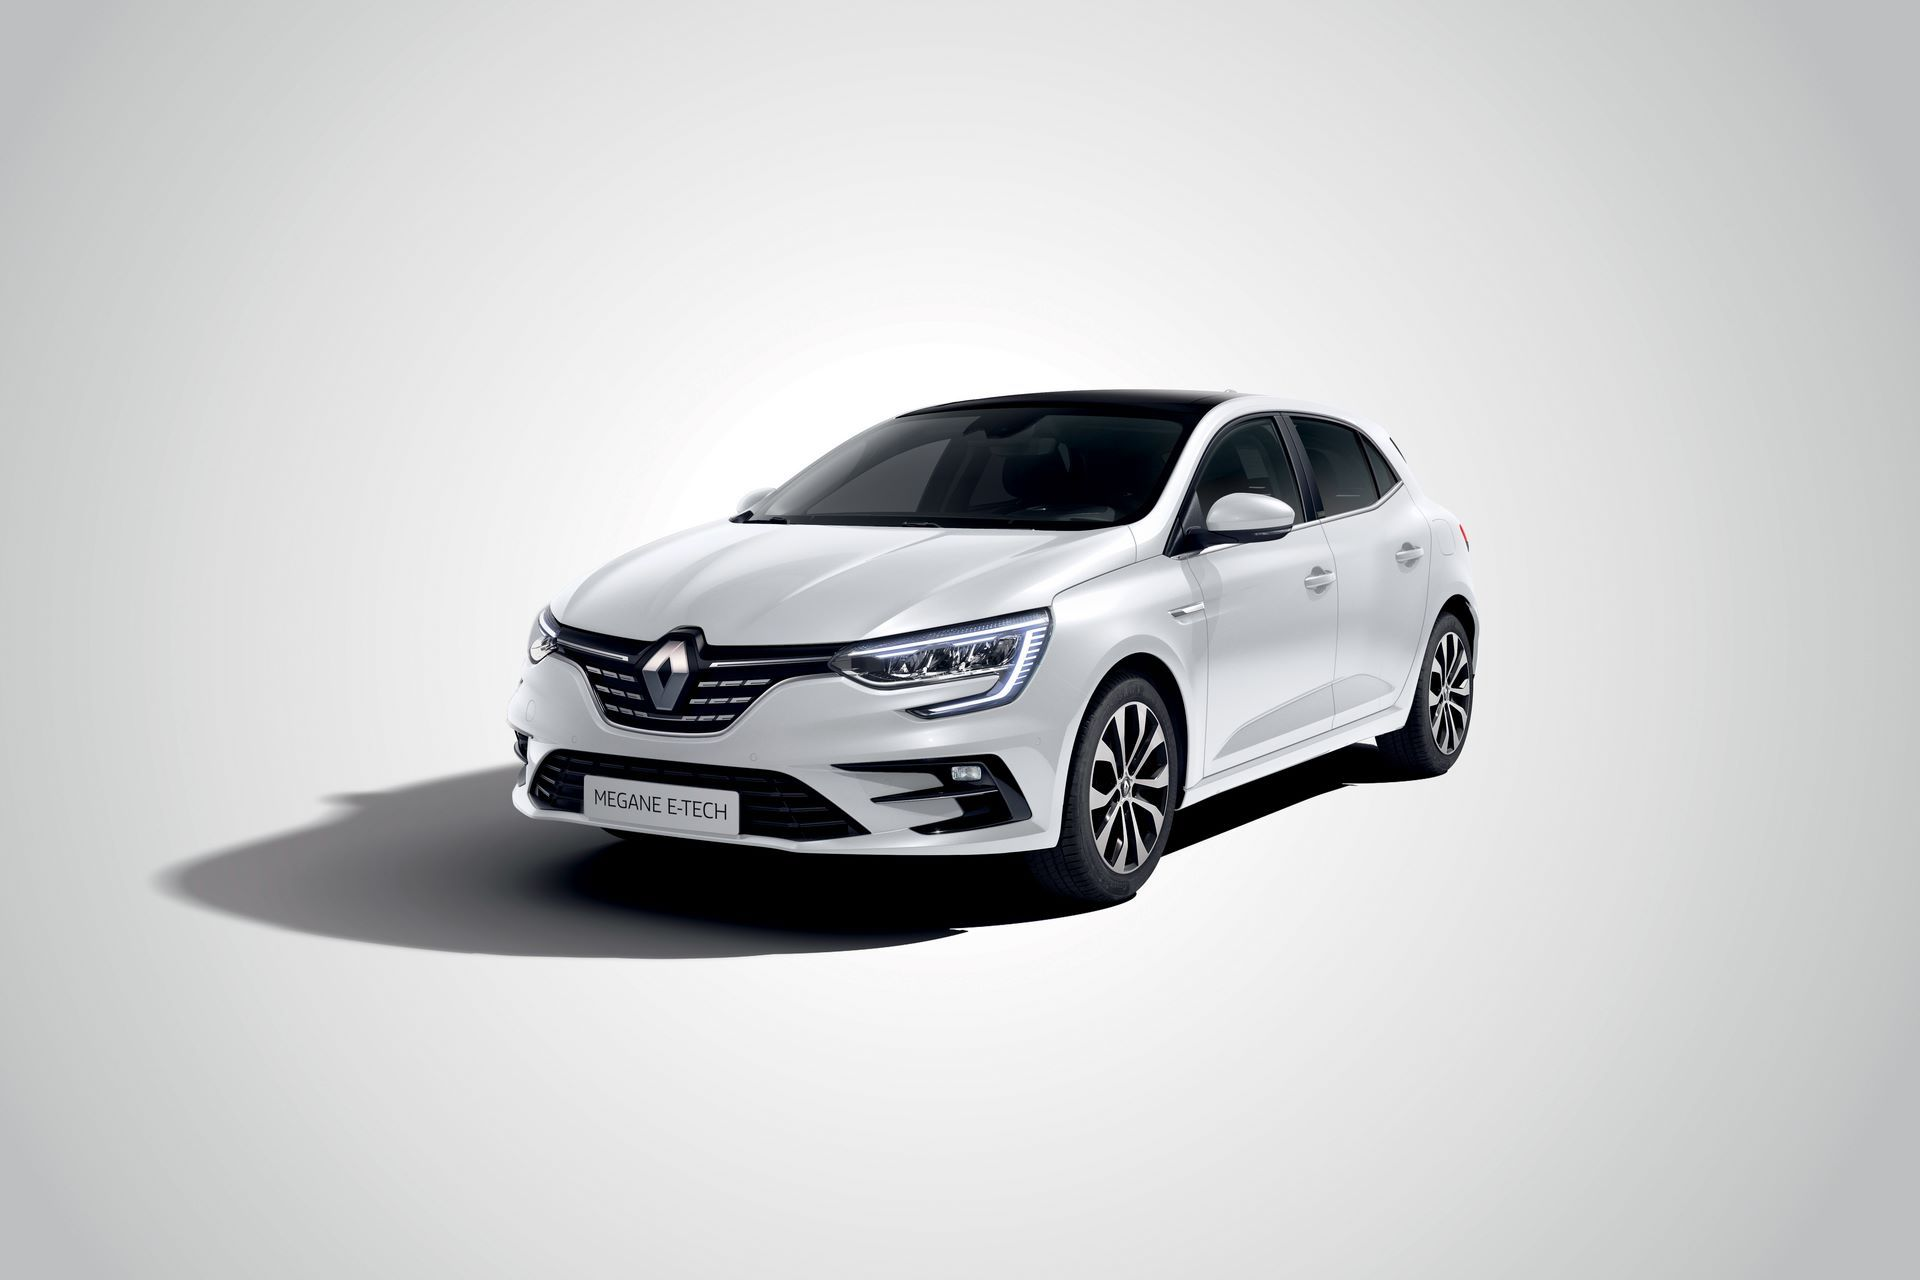 2020-New-Renault-MEGANE-Berline-E-TECH-Plug-In-Hybrid-6